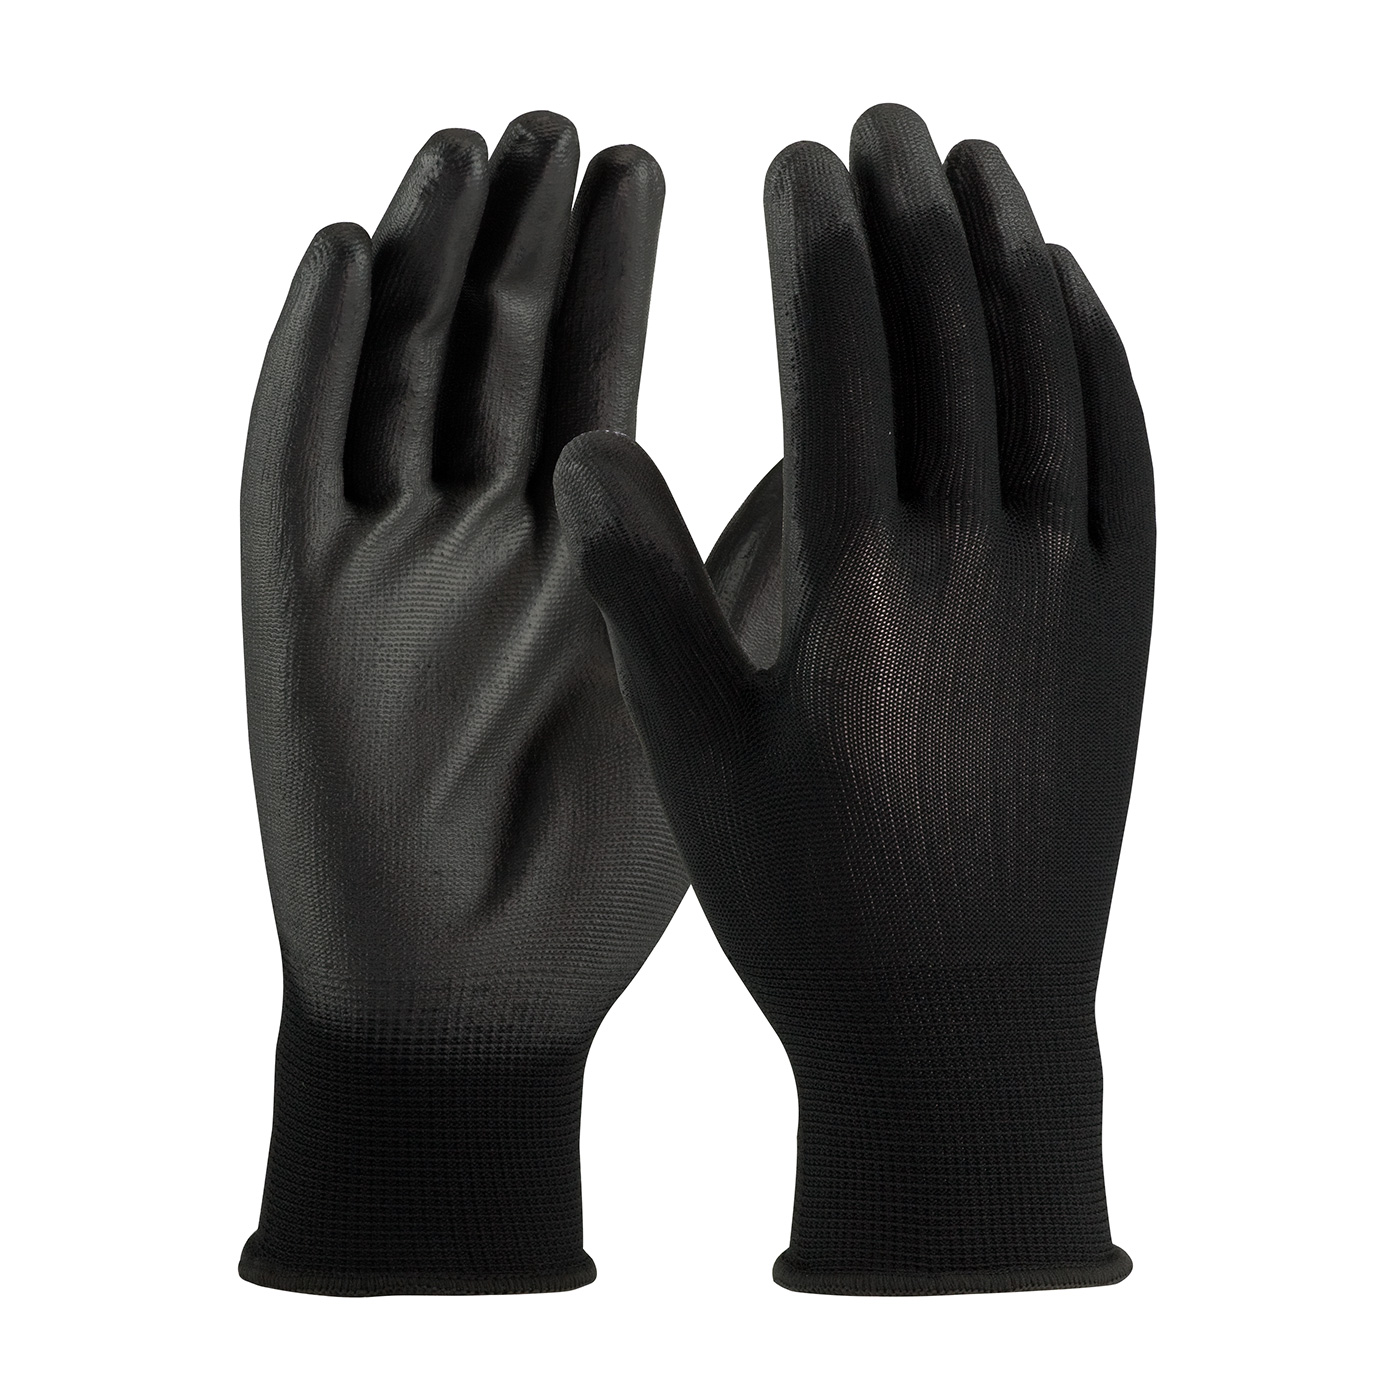 PIP® Seamless Knit Black Polyester Glove with Black Polyurethane Coated Smooth Grip on Palm & Fingers #33-B115